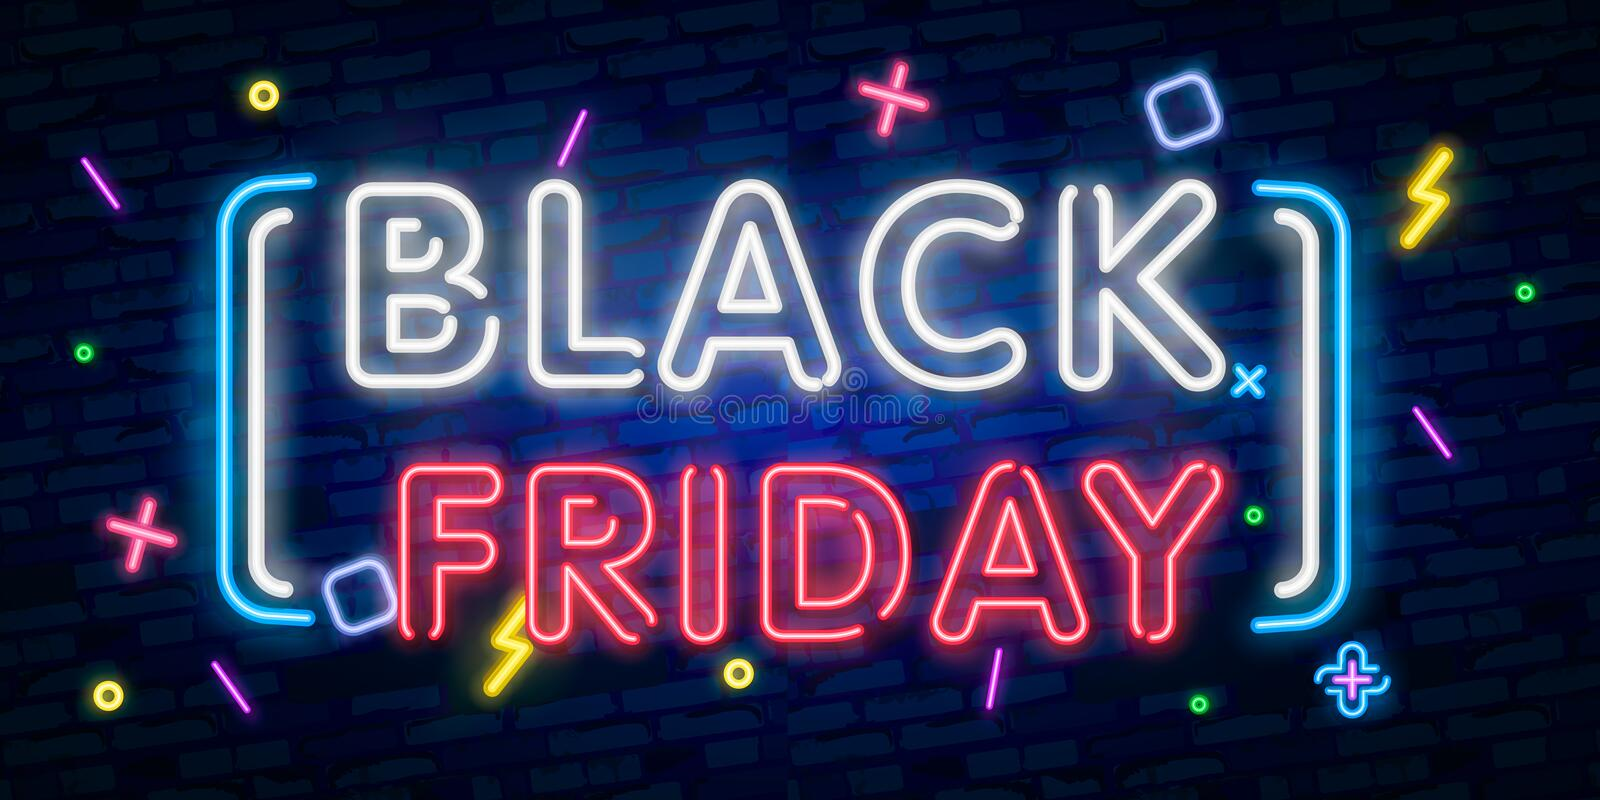 Black Friday Sale neon sign vector. Black Friday Sale Design template neon sign, light banner, neon signboard, nightly bright adve stock illustration